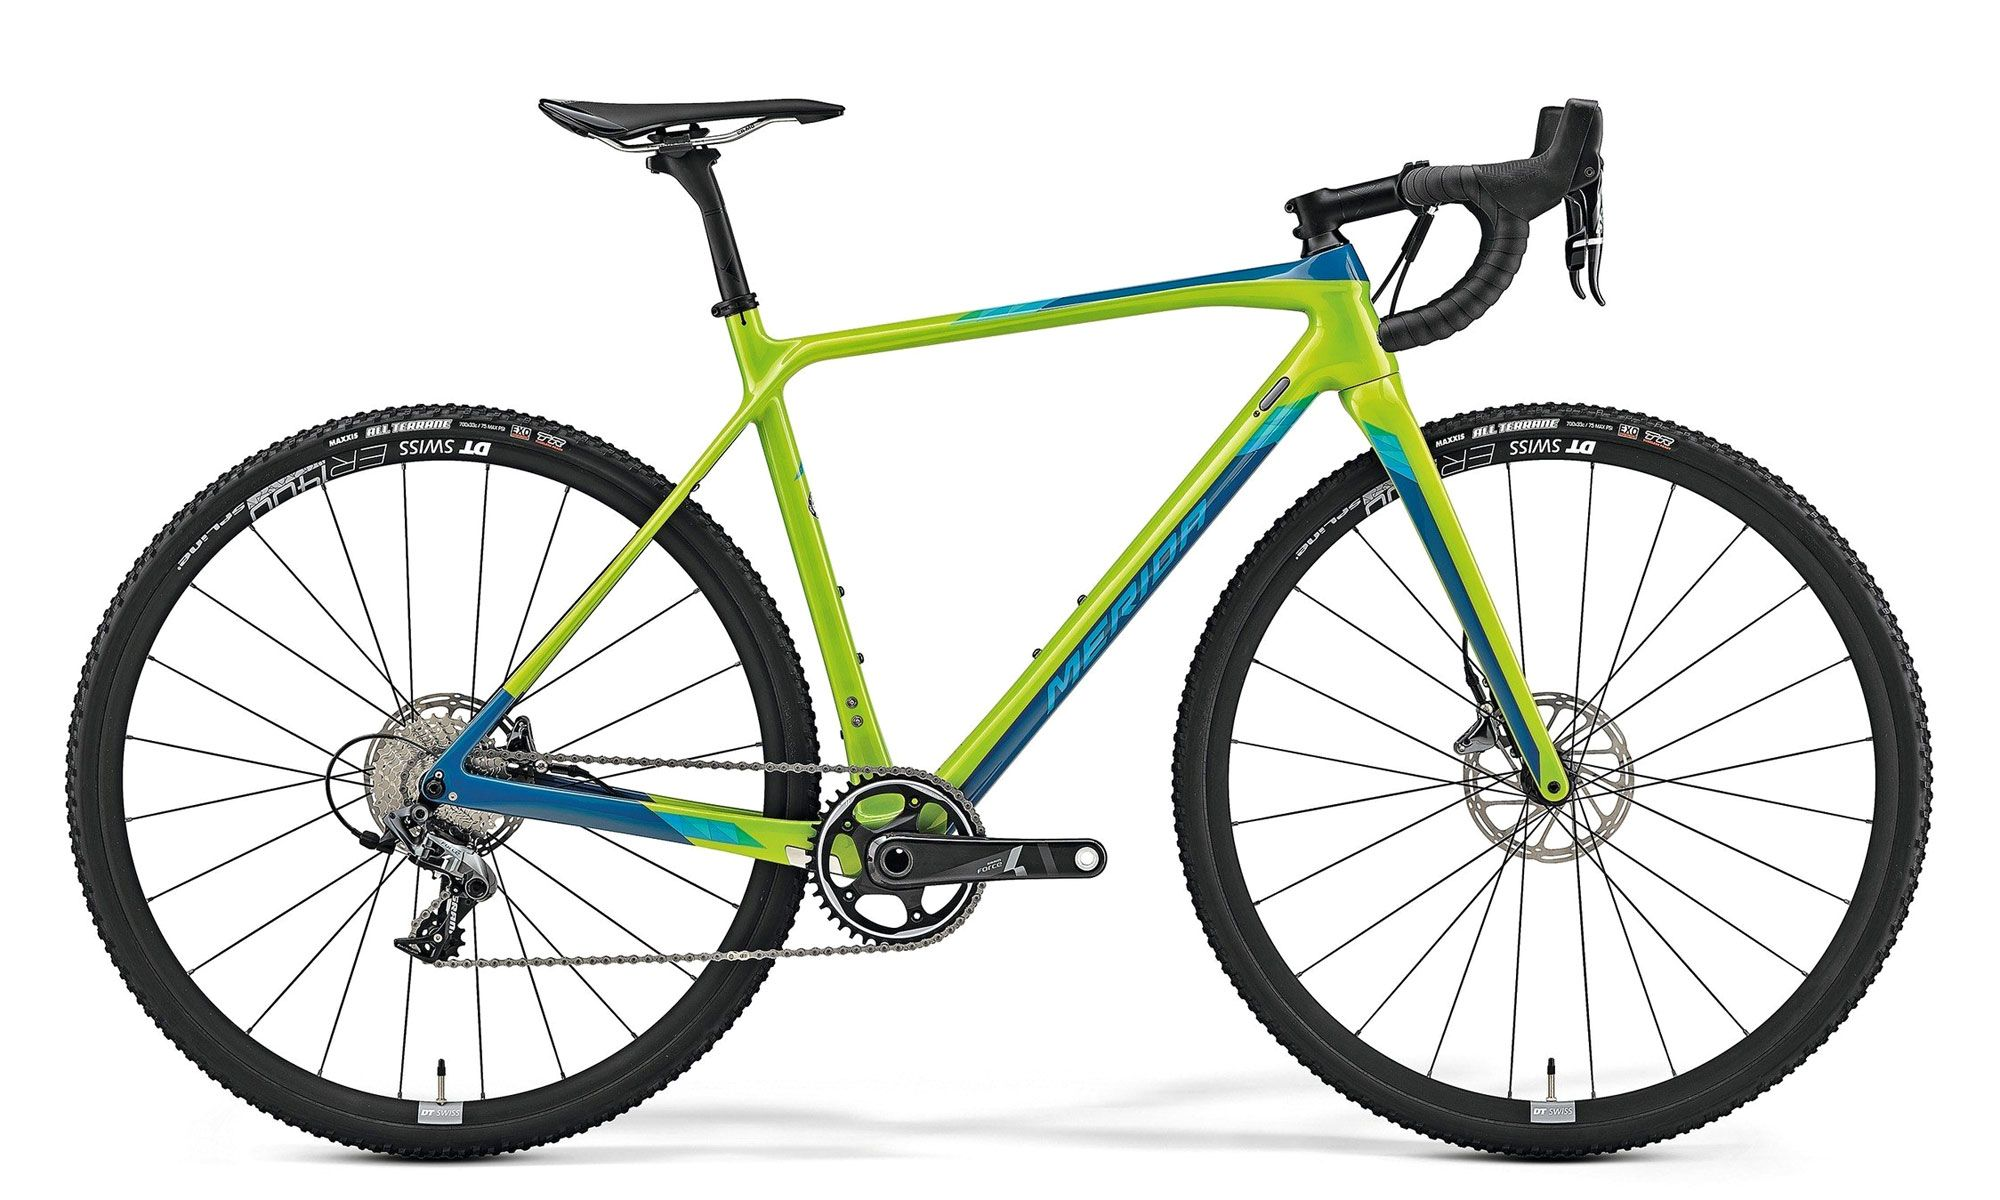 Review Merida Mission Cx Carbon Cyclocross Race Bike Maintains